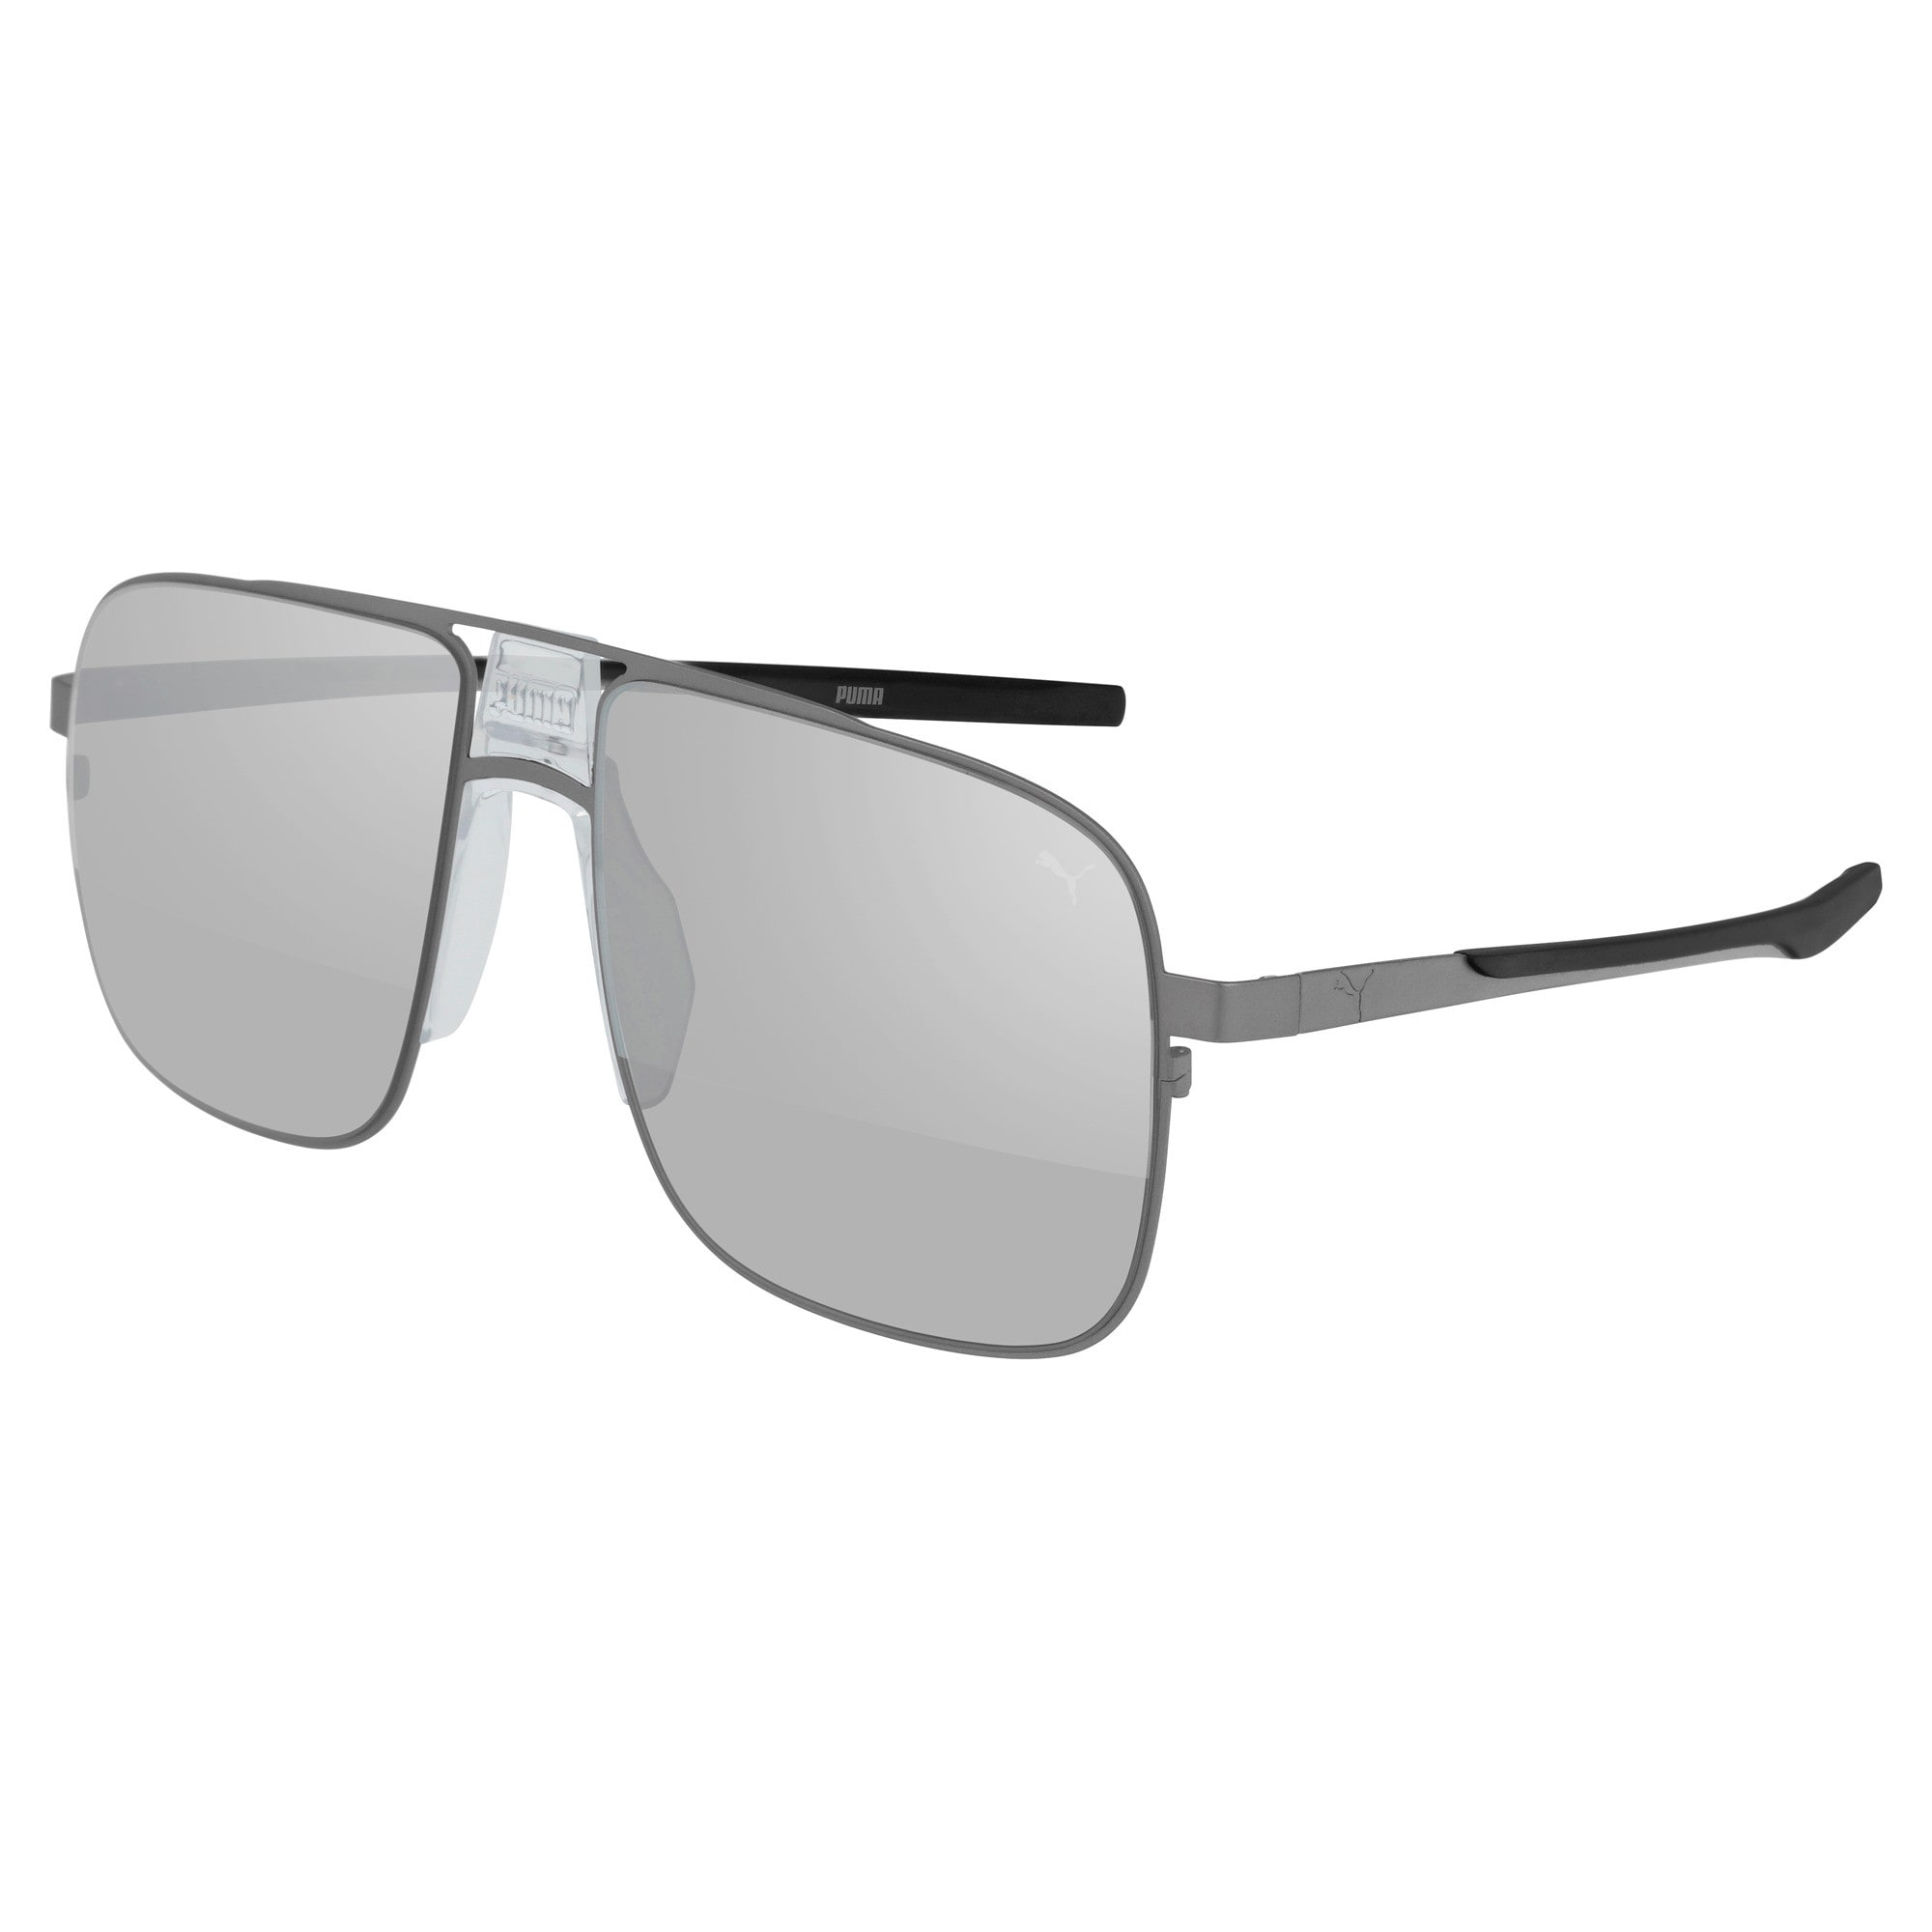 Thumbnail 1 of Men's Sunglasses, RUTHENIUM-RUTHENIUM-SILVER, medium